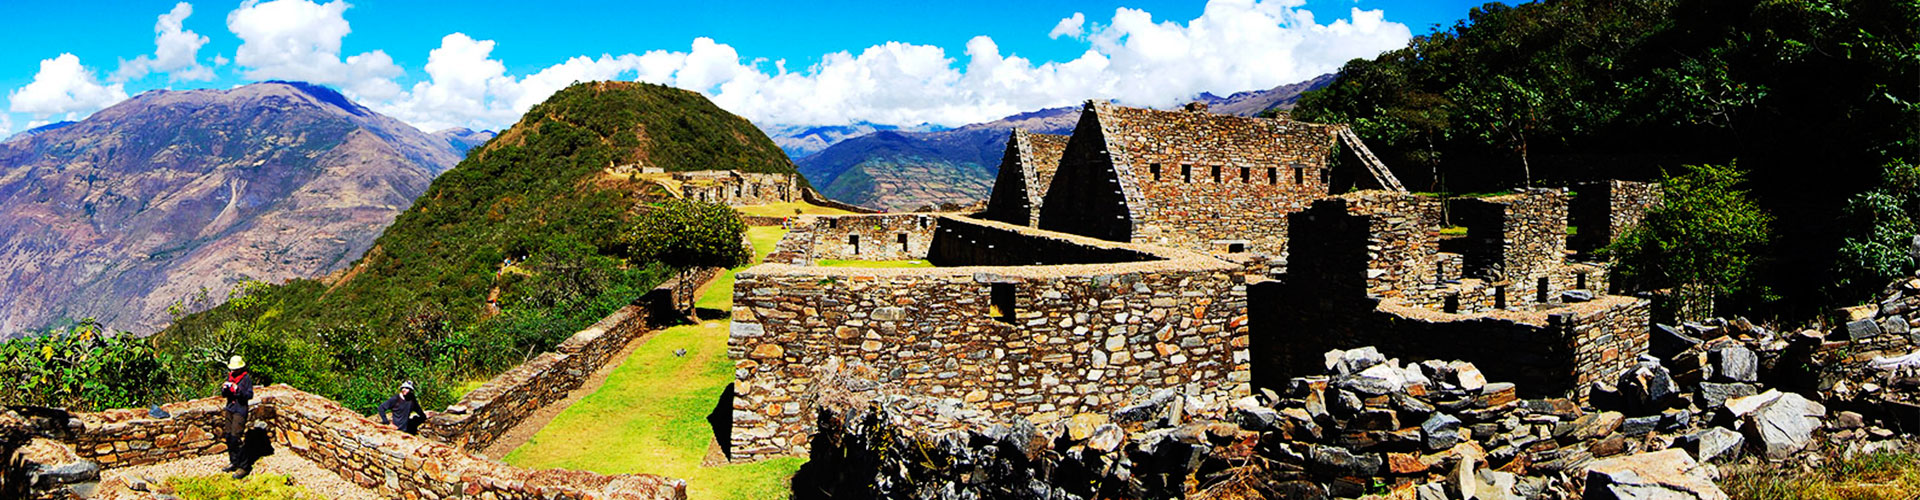 Choquequirao Trek To Machu Picchu 8D/7N